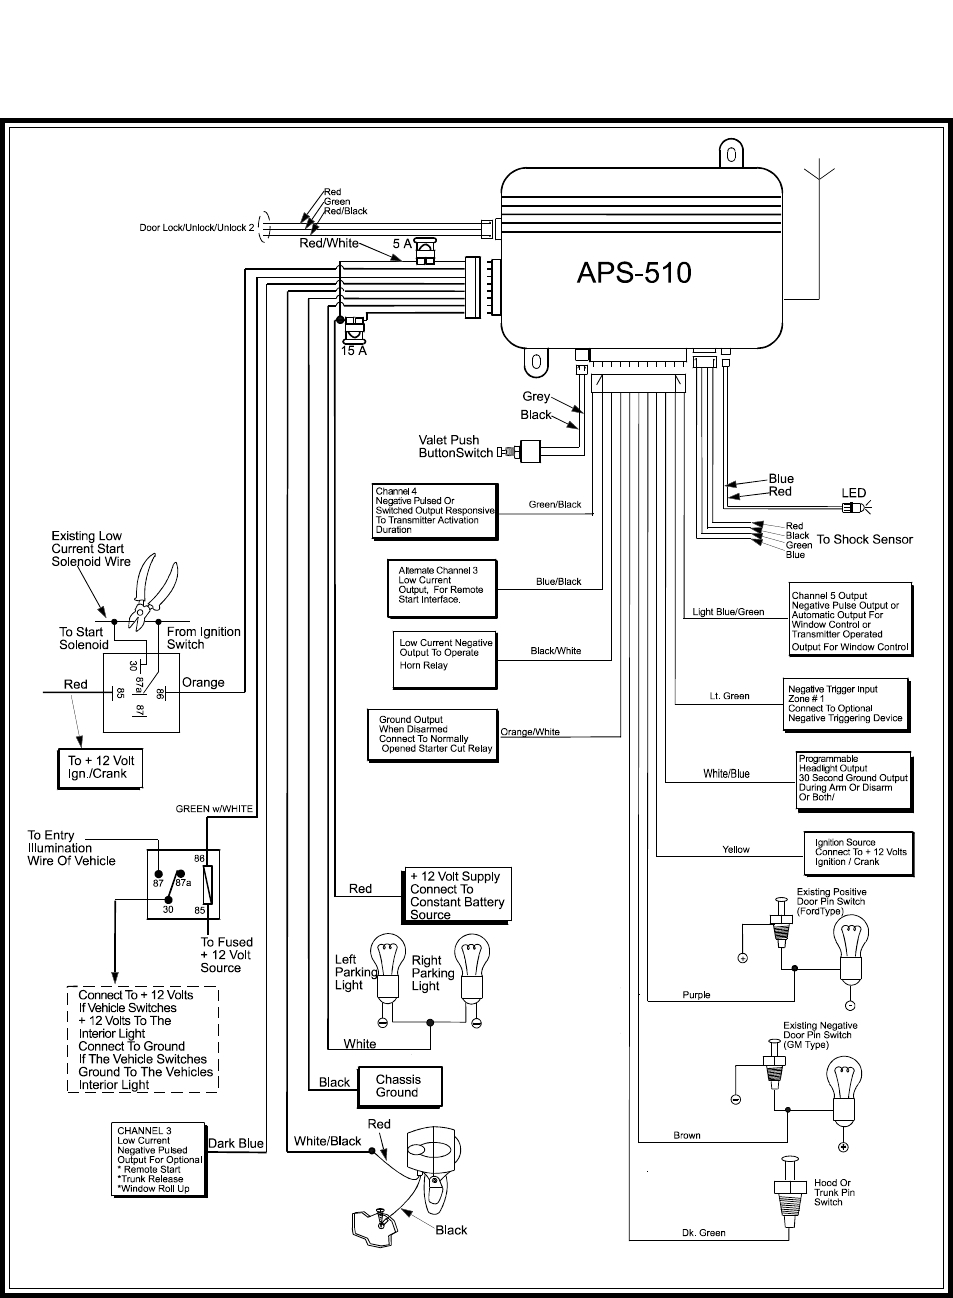 bulldog car alarm wiring diagram Download-bulldog car alarm wiring diagram Collection Car Security Alarm Wiring Diagram ShrutiRadio For mando 11 9-k